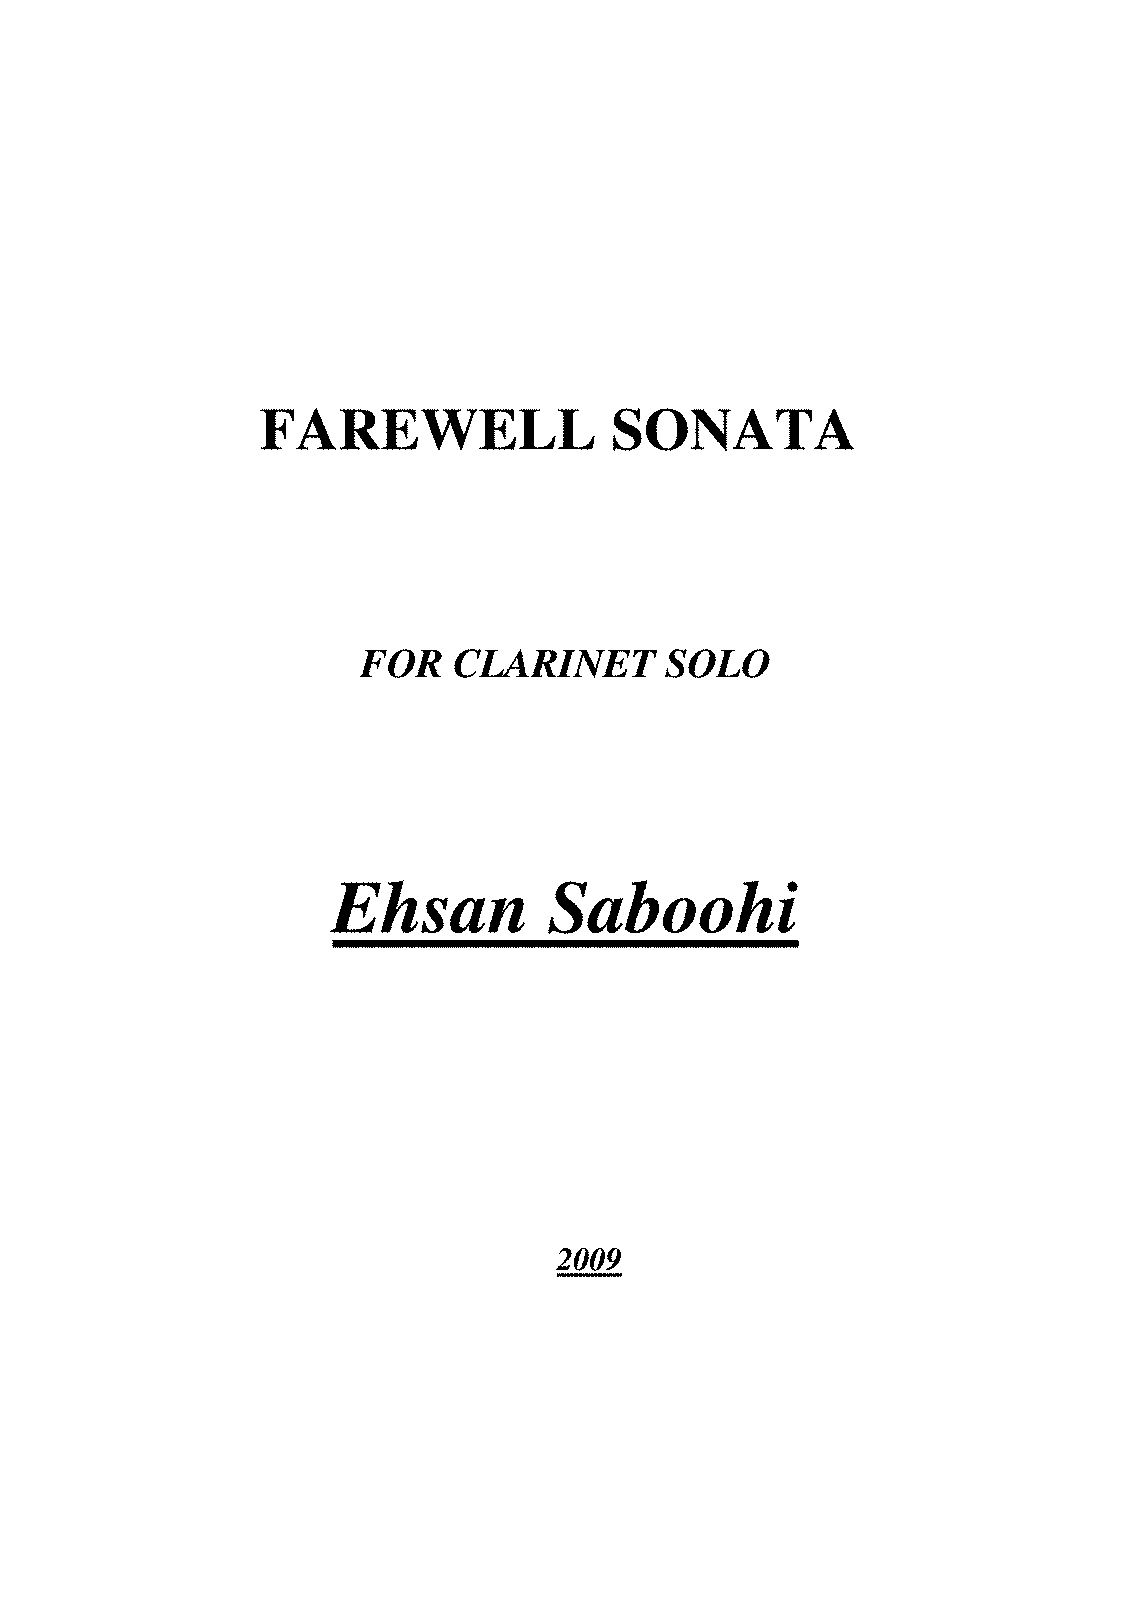 PMLP93236-FAREWELL SONATA FOR CLARINET SOLO.pdf